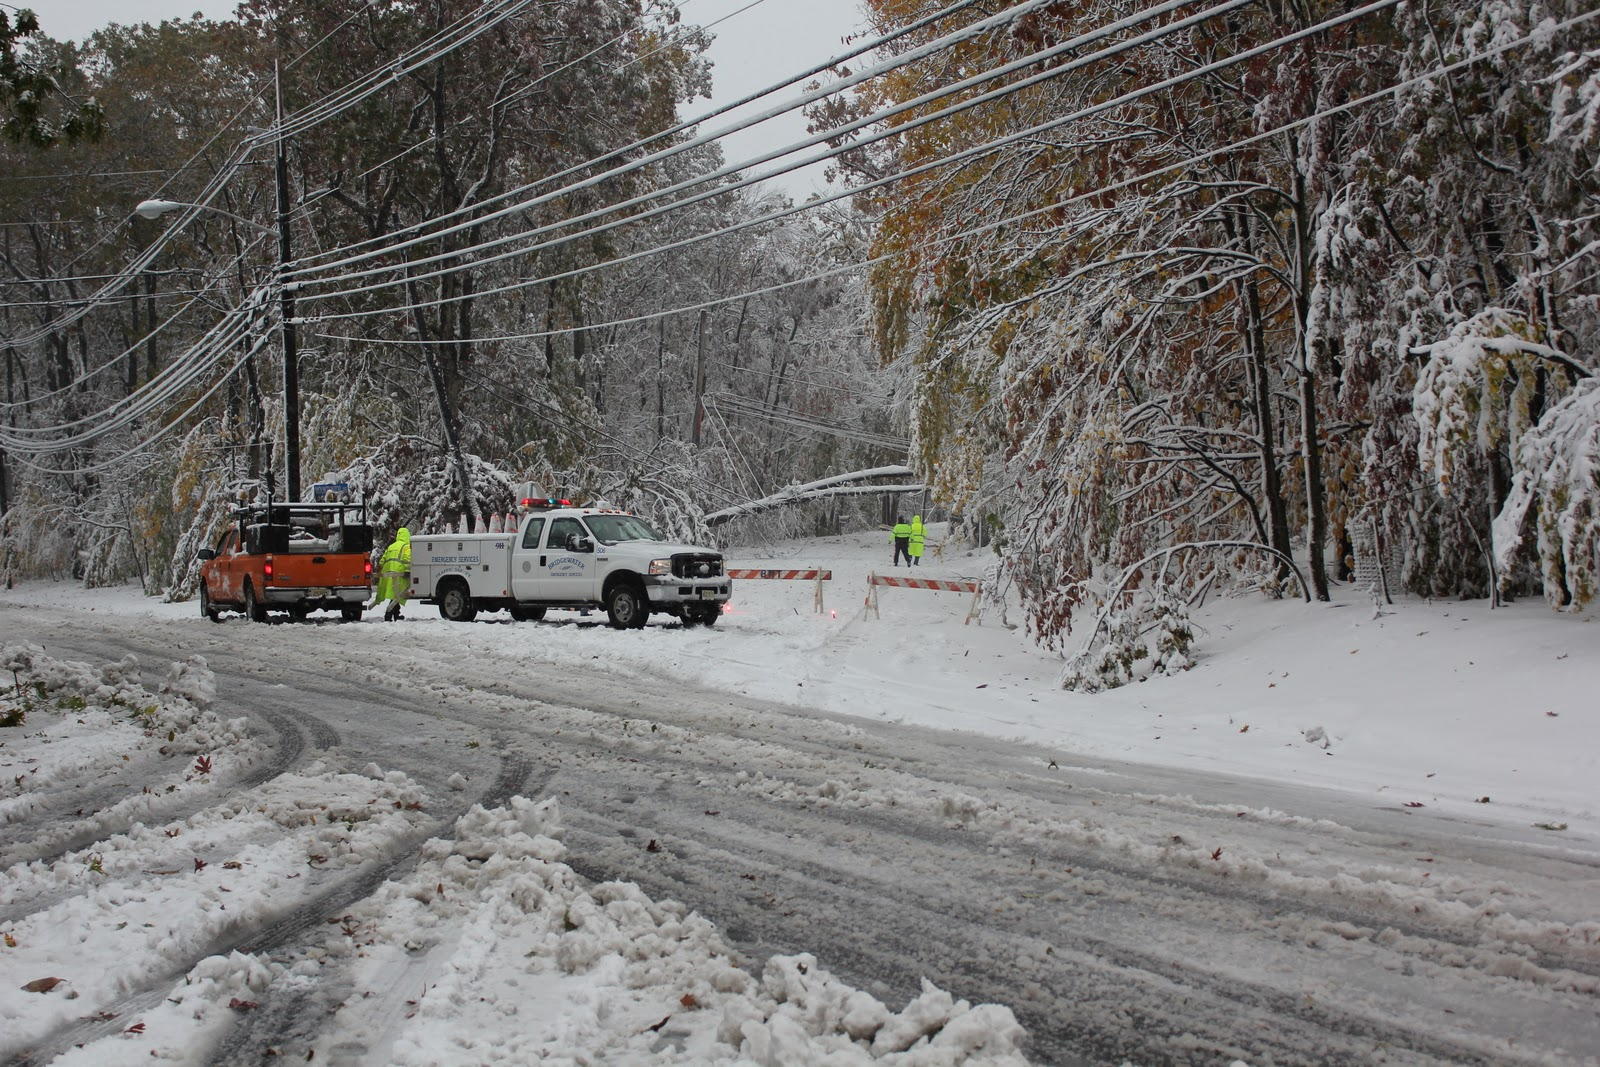 Road are blocked during a freak NJ fall snowstorm.